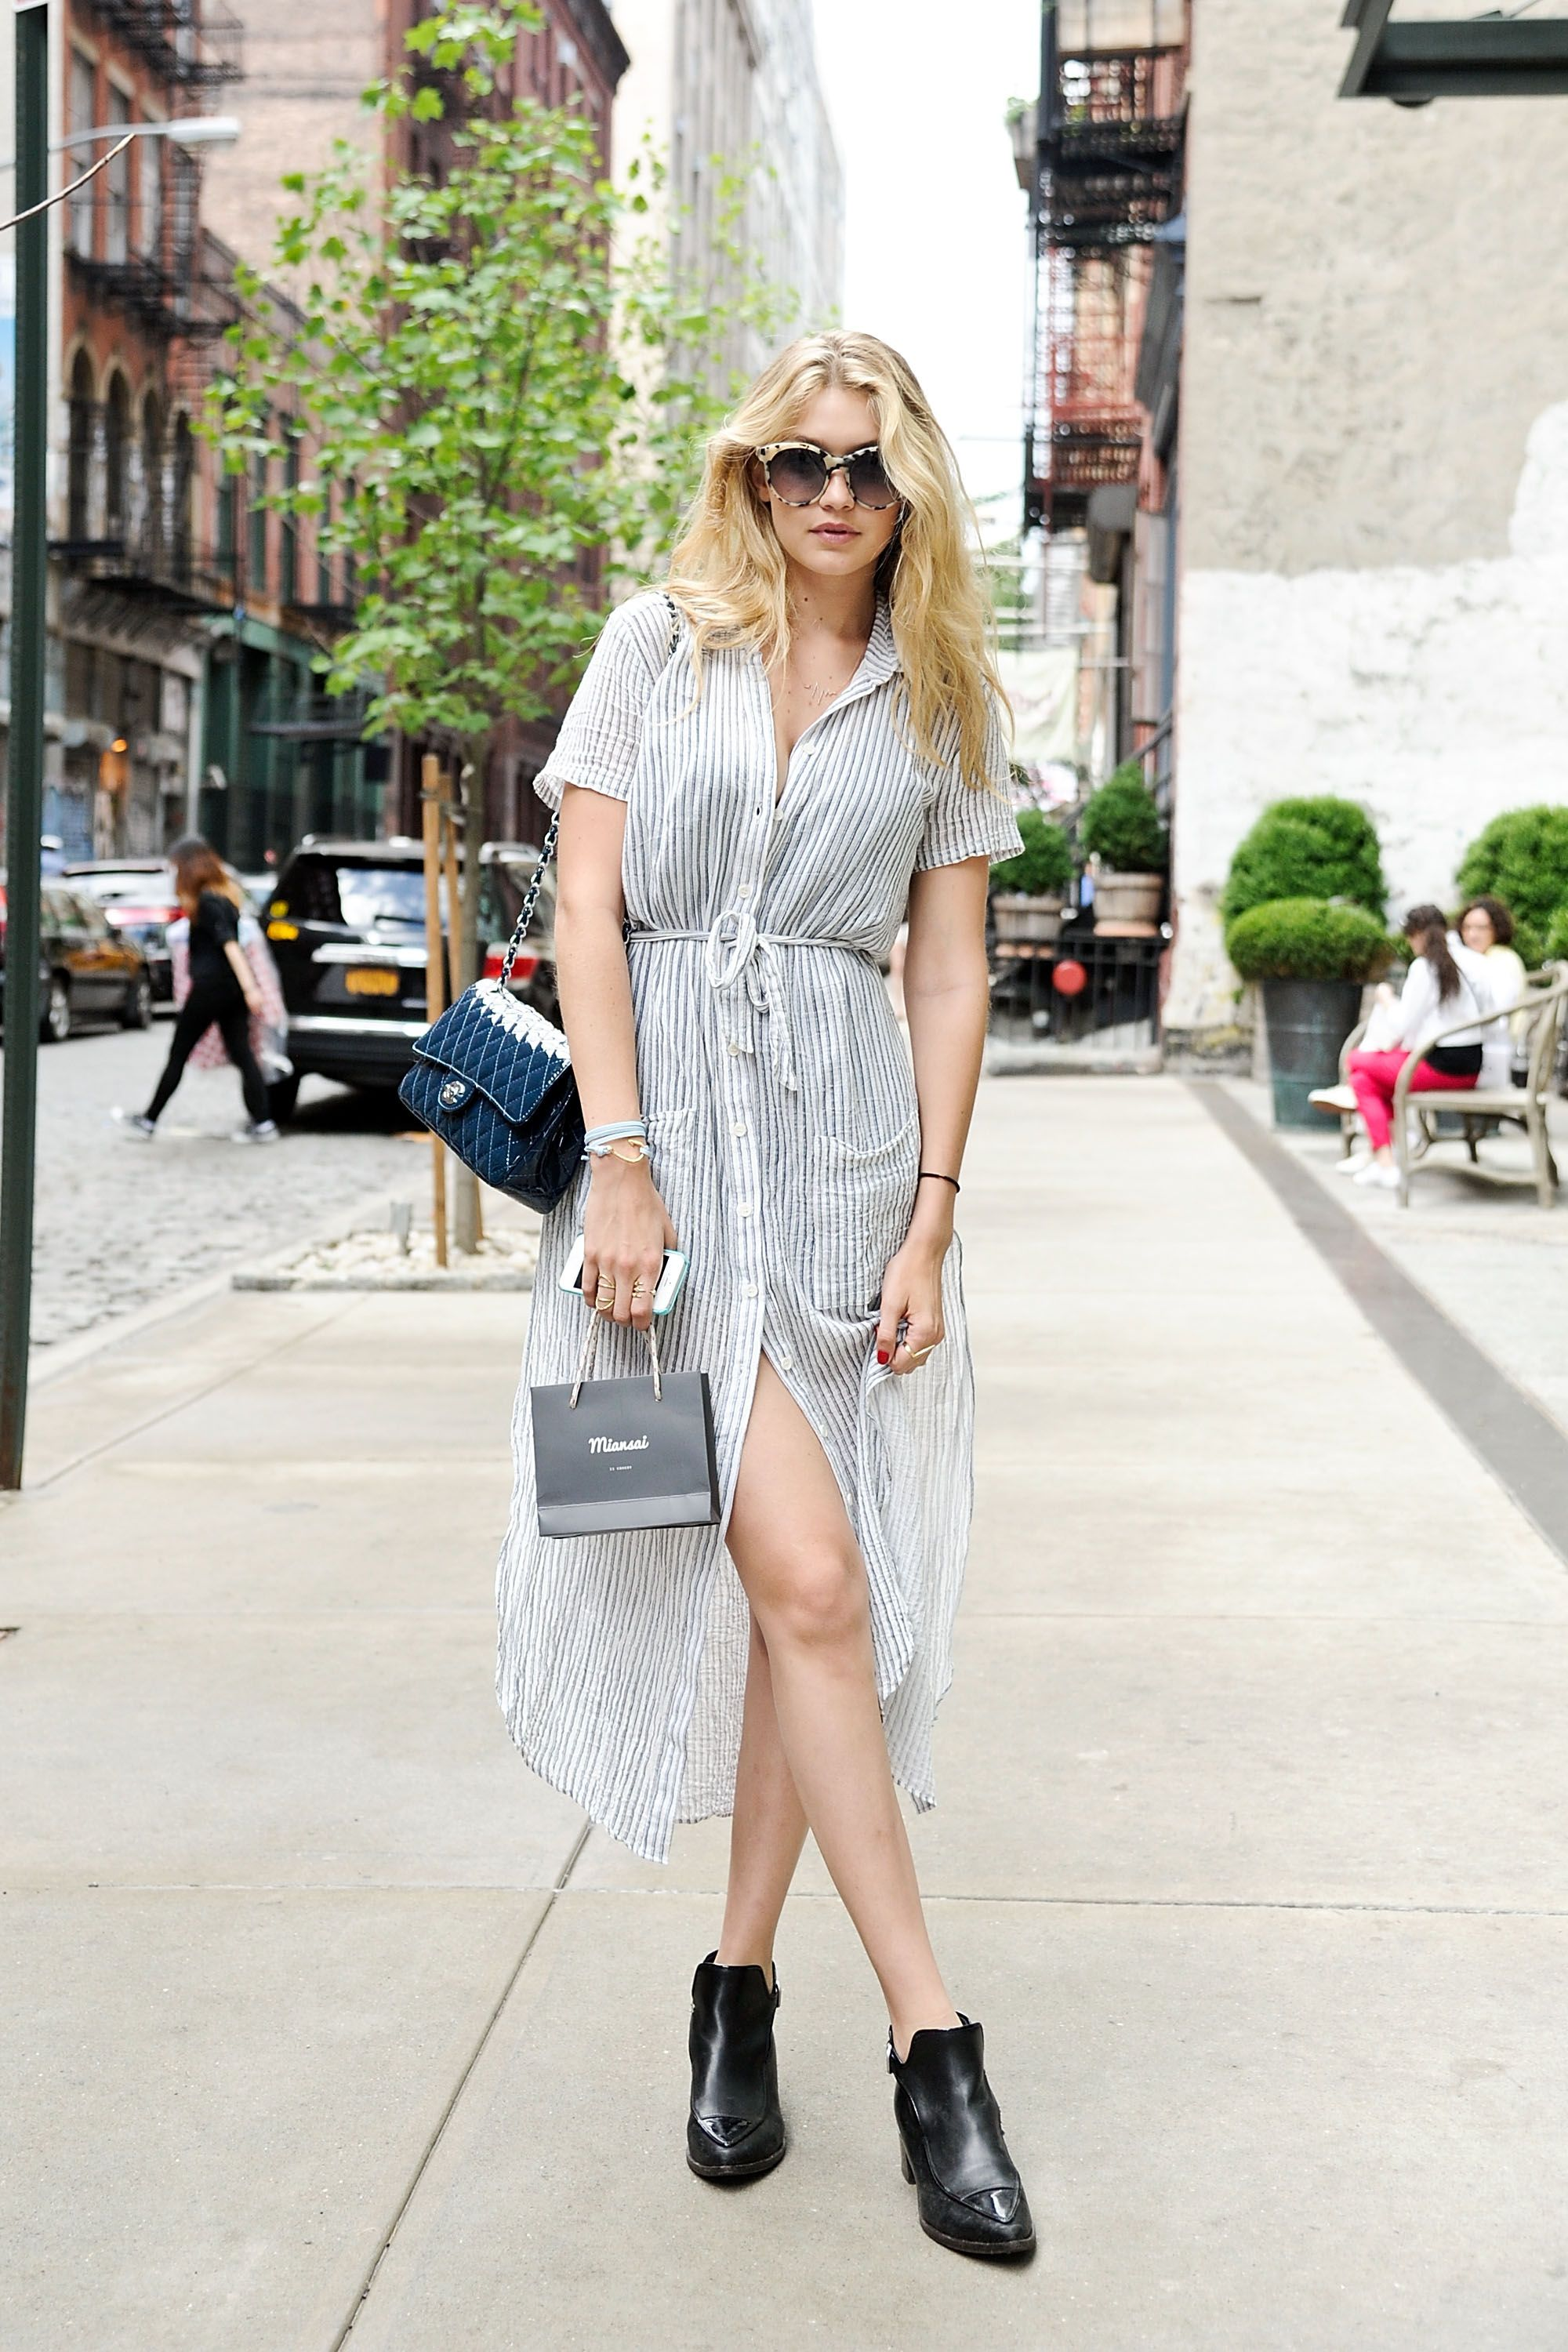 Gigi Hadid A loose-fitting shirtdress that's more caftan than business-casual is one way to feel like you're at the beach instead of in the middle of a concrete jungle.